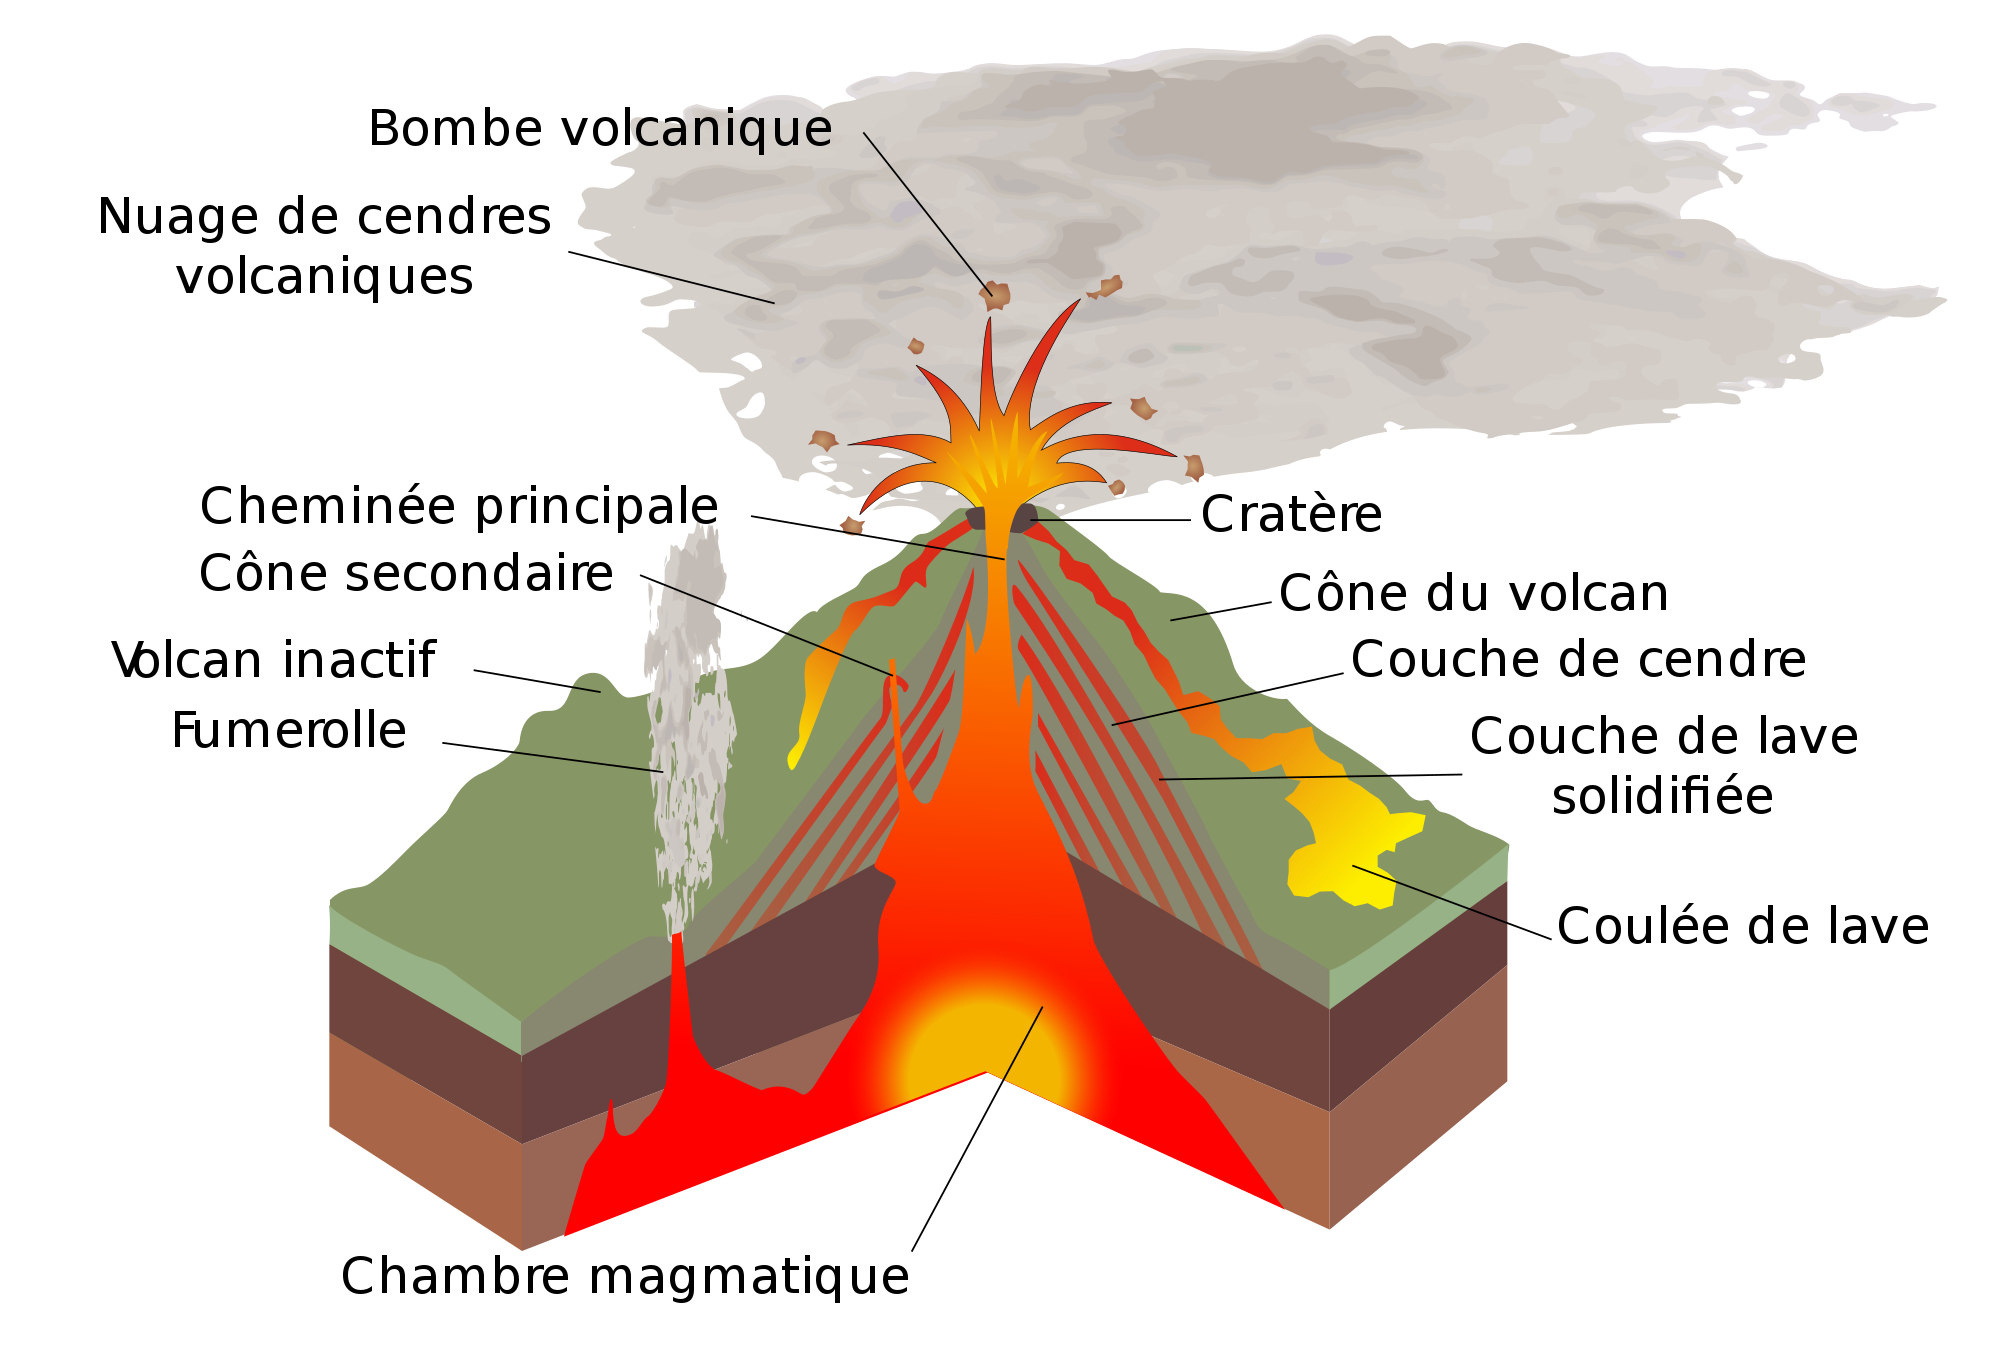 Transparent volcano svg. File structure fr wikimedia